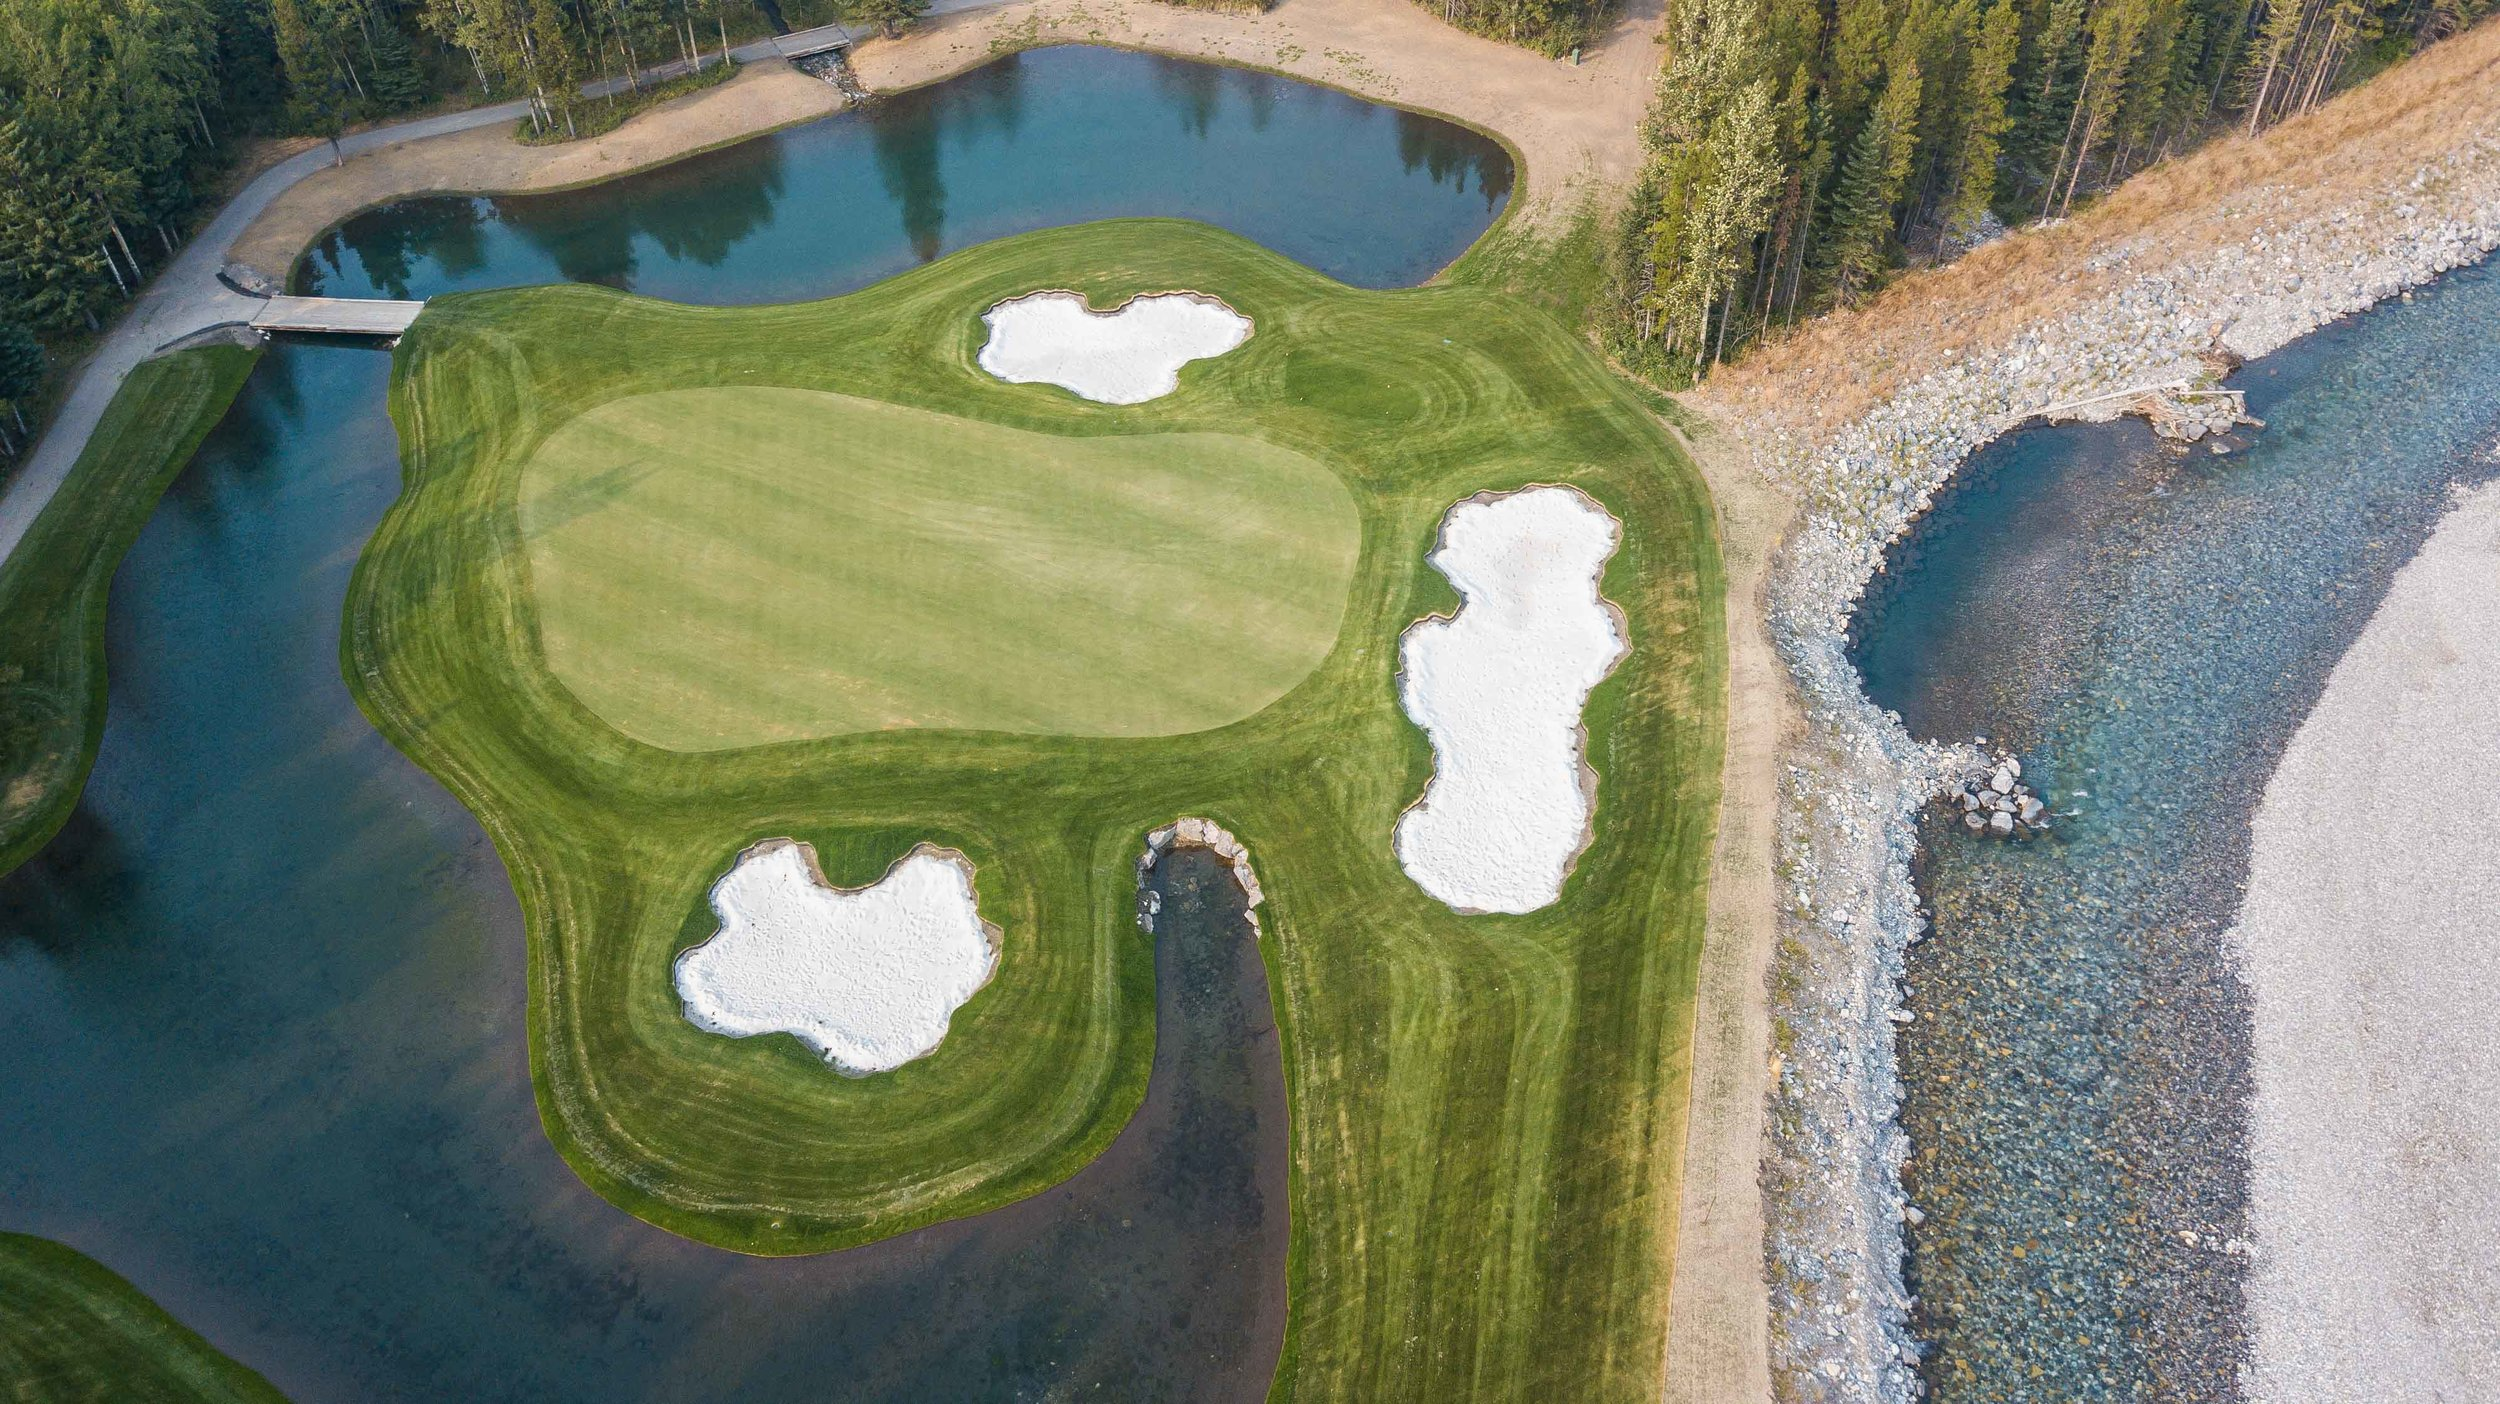 The Mt Kidd 18 will open with 9 holes available in the beginning of 2018